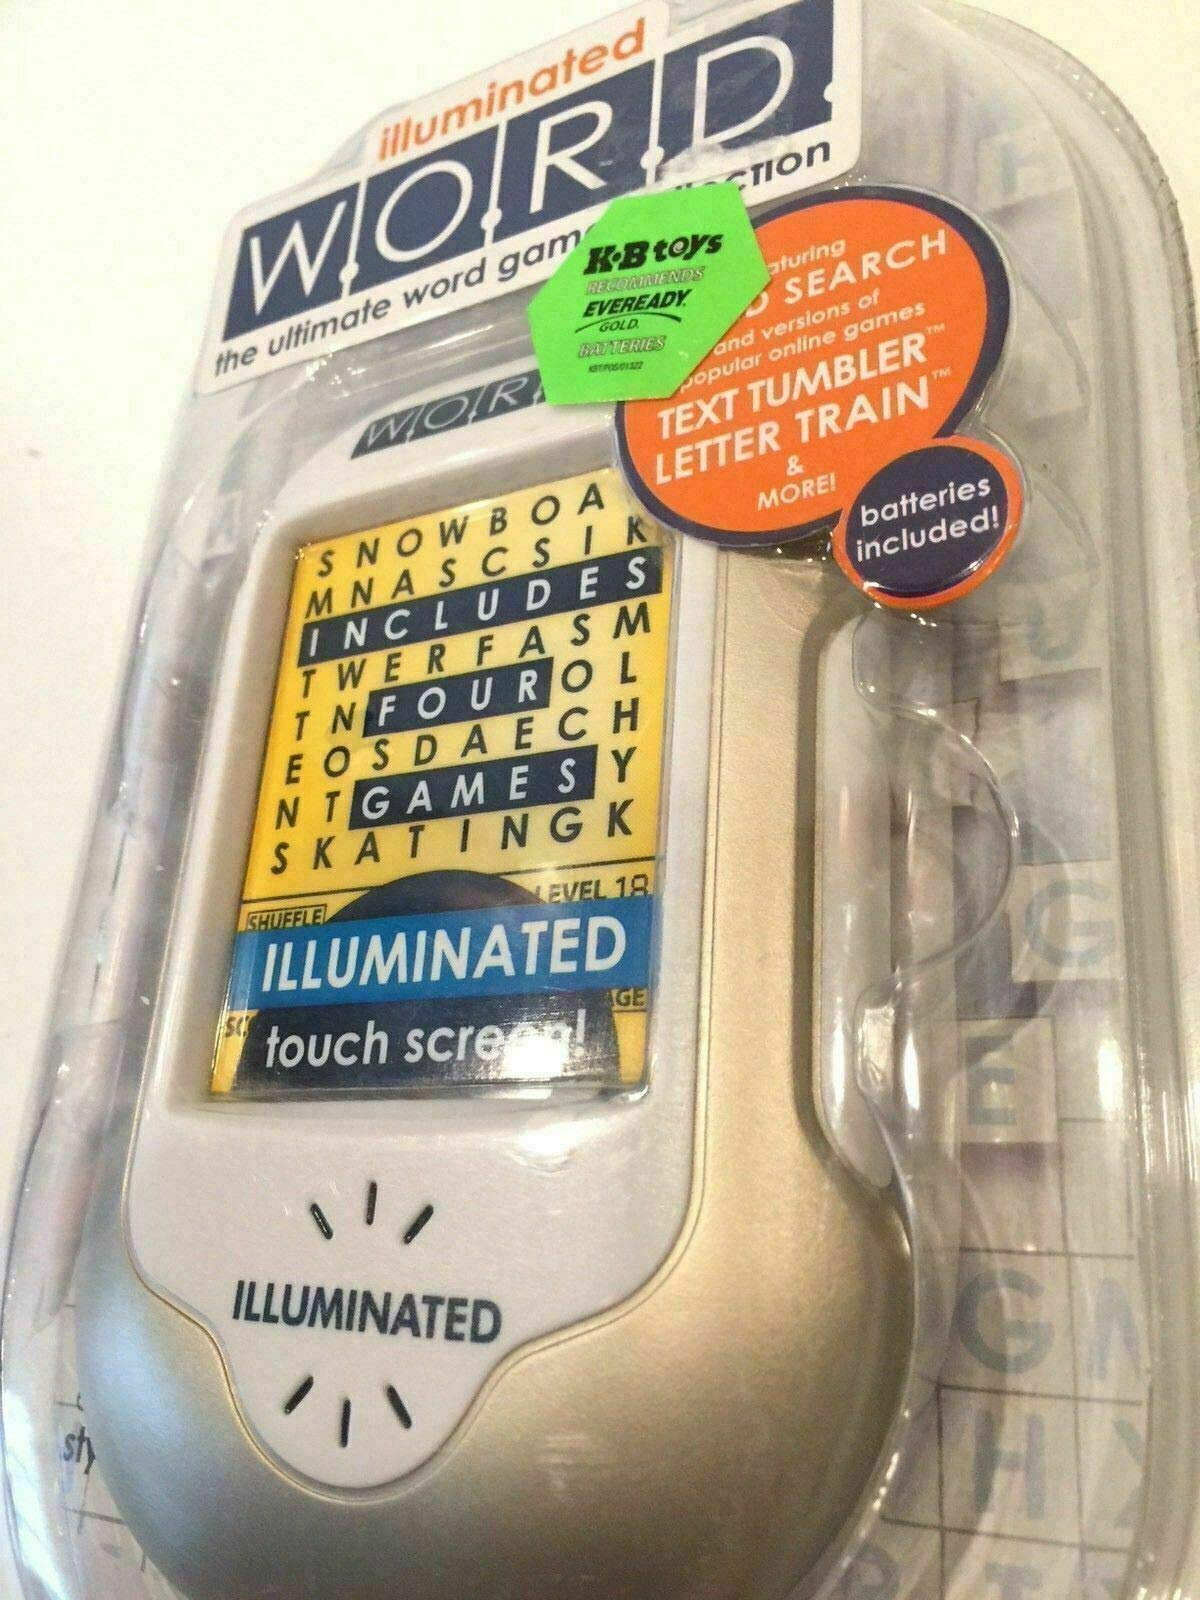 Illuminated Word The Ultimate Word Game Collection Rare Pocket Travel Stylus NEW by Generic (Image #4)